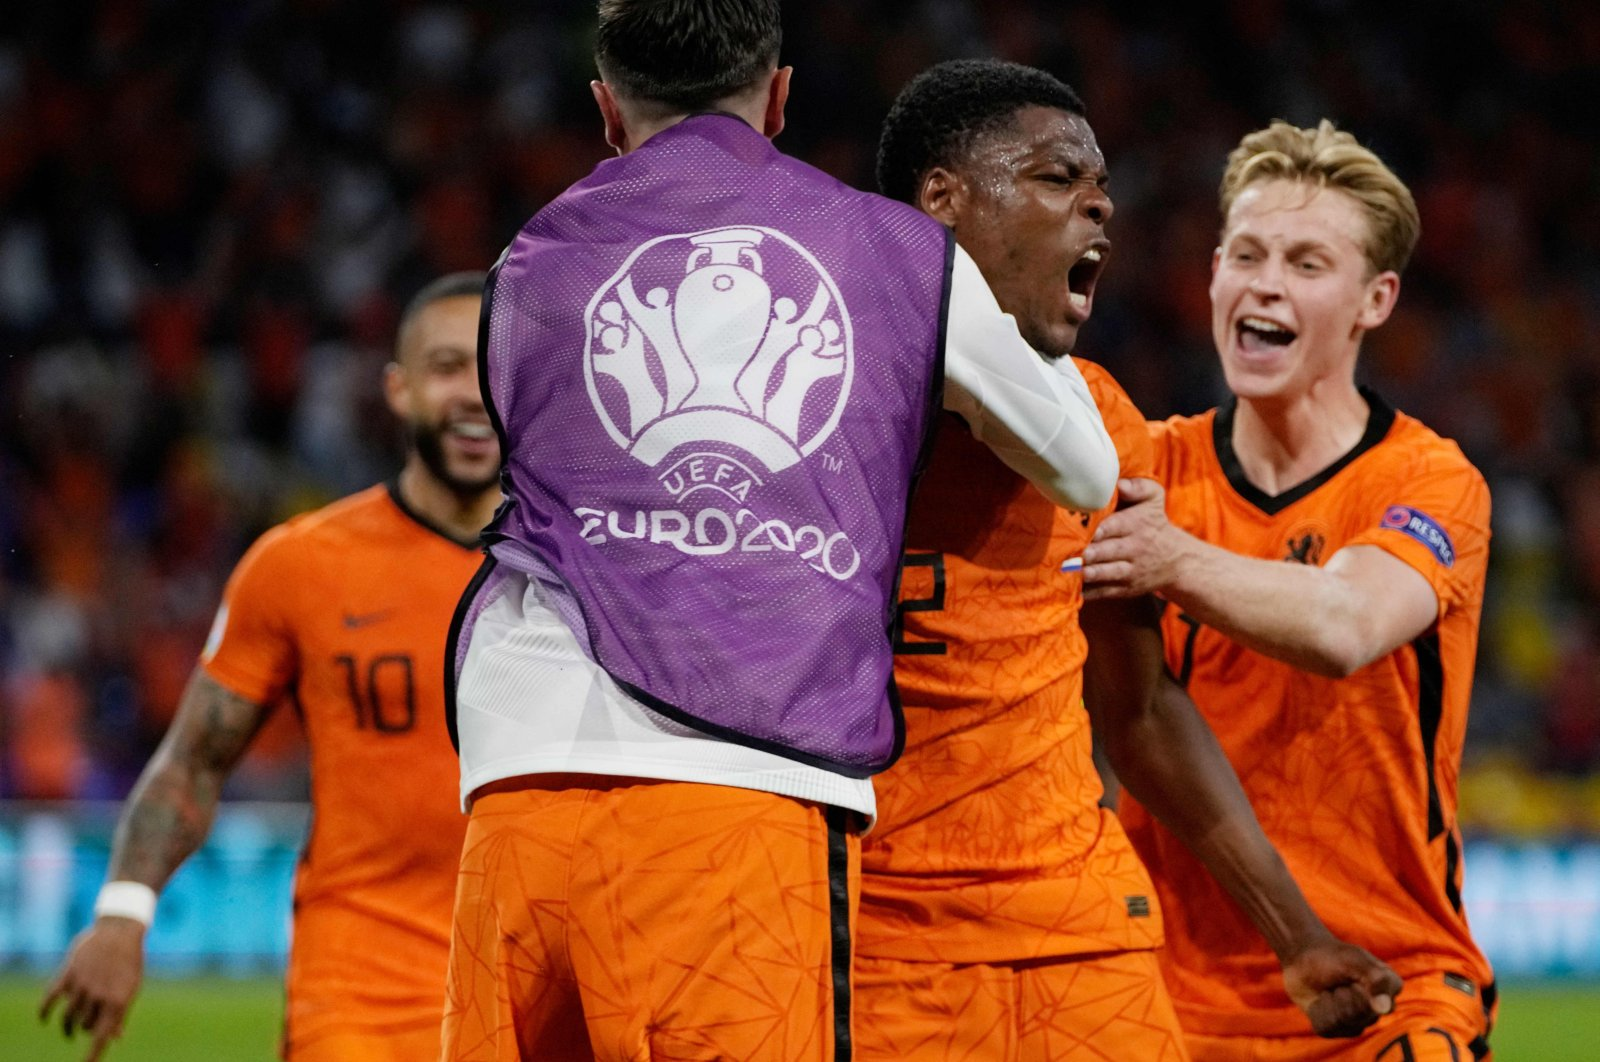 Netherlands' defender Denzel Dumfries (C) is congratulated after scoring the winning goal during the UEFA EURO 2020 Group C match against Ukraine at the Johan Cruyff Arena in Amsterdam, the Netherlands, June 13, 2021. (AFP Photo)